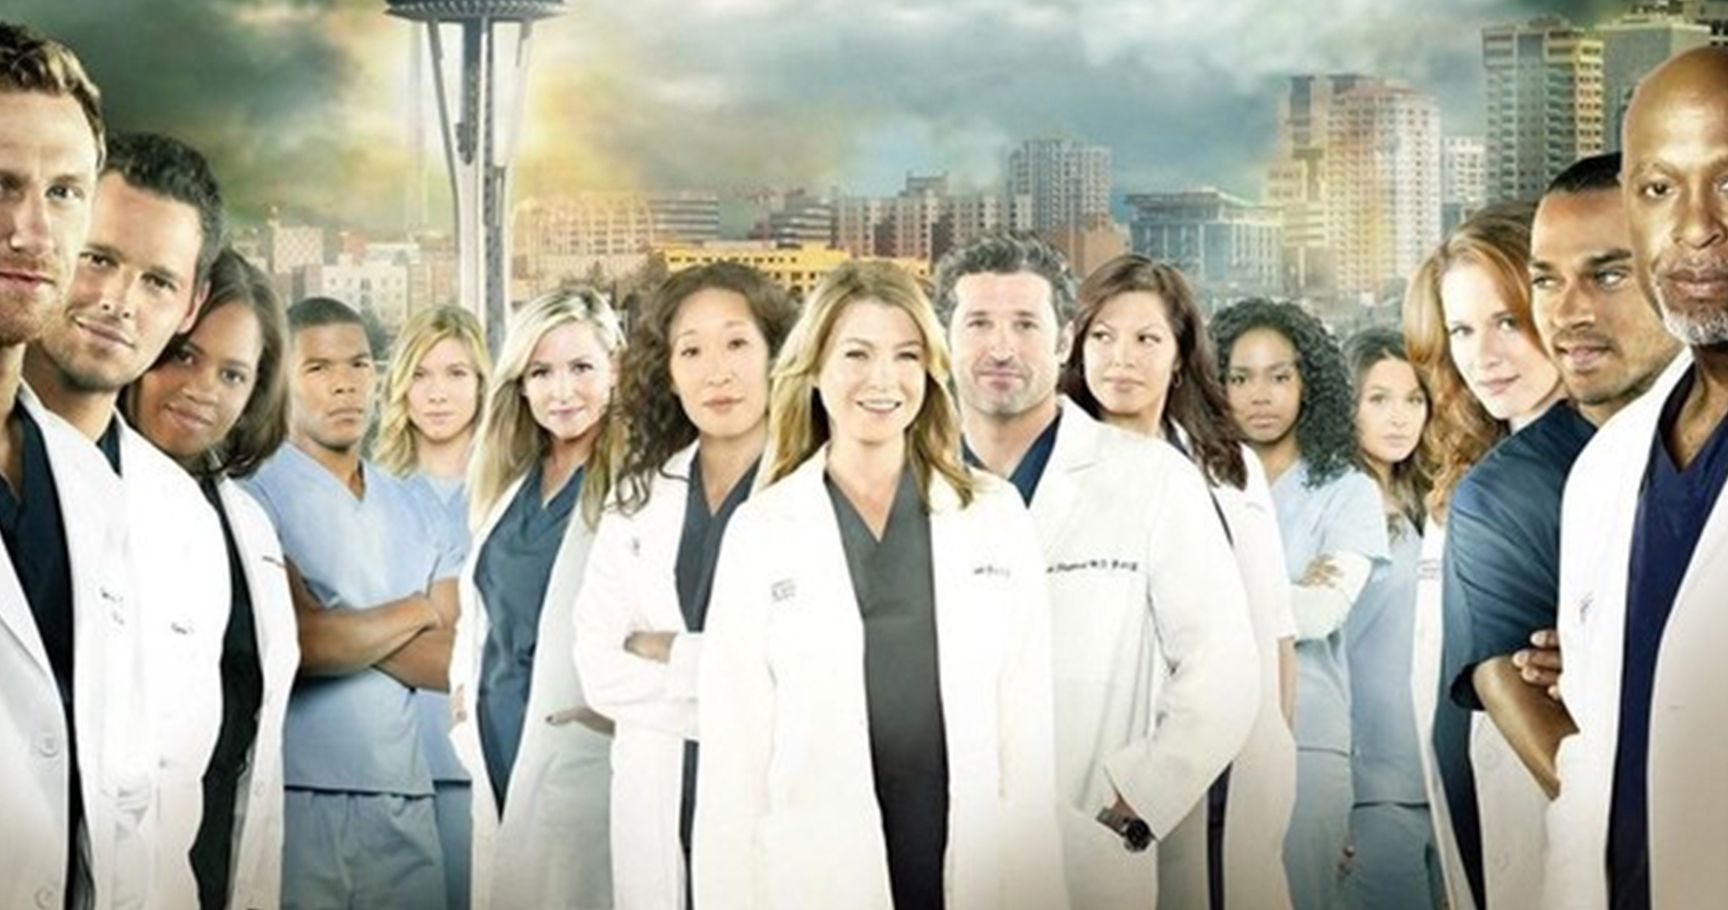 How Well Do You Know 'Grey's Anatomy'?